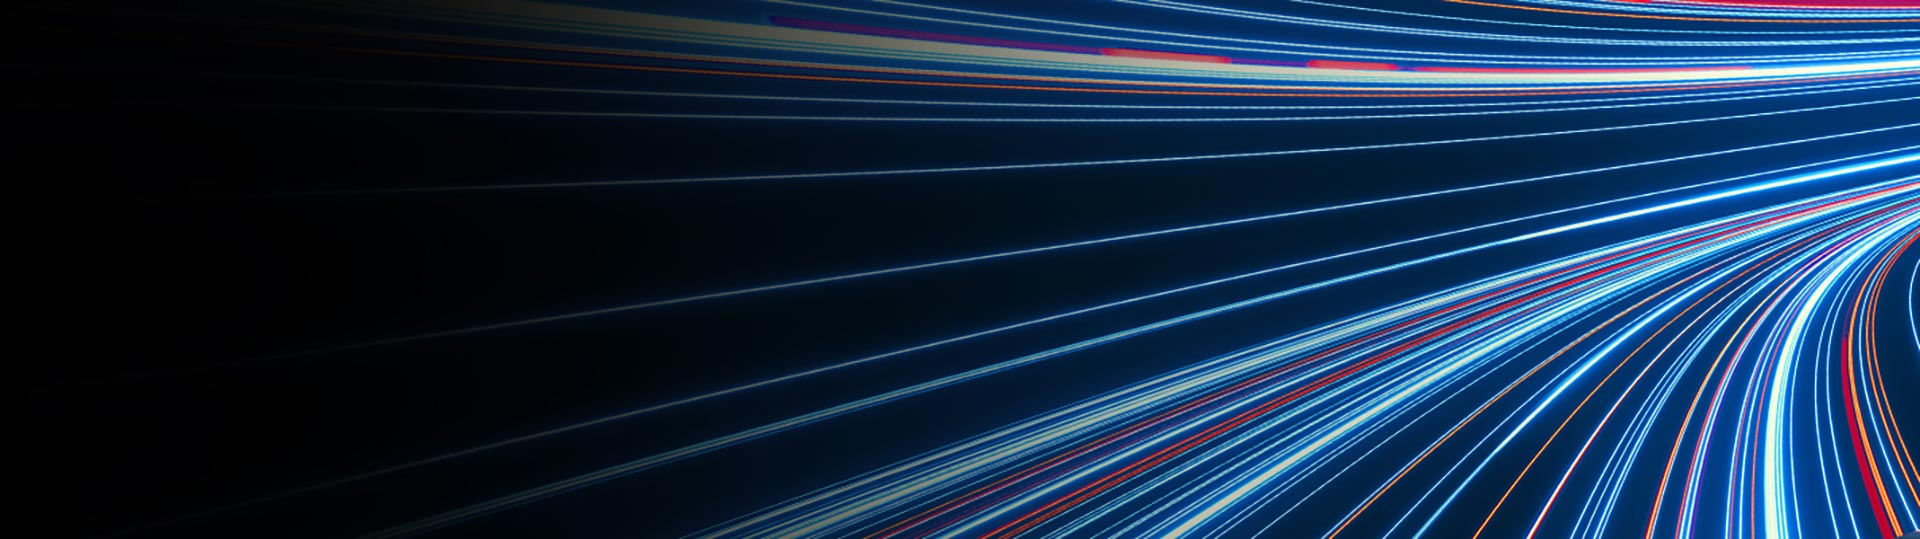 3 Strategies Telcos Can Use to Thrive